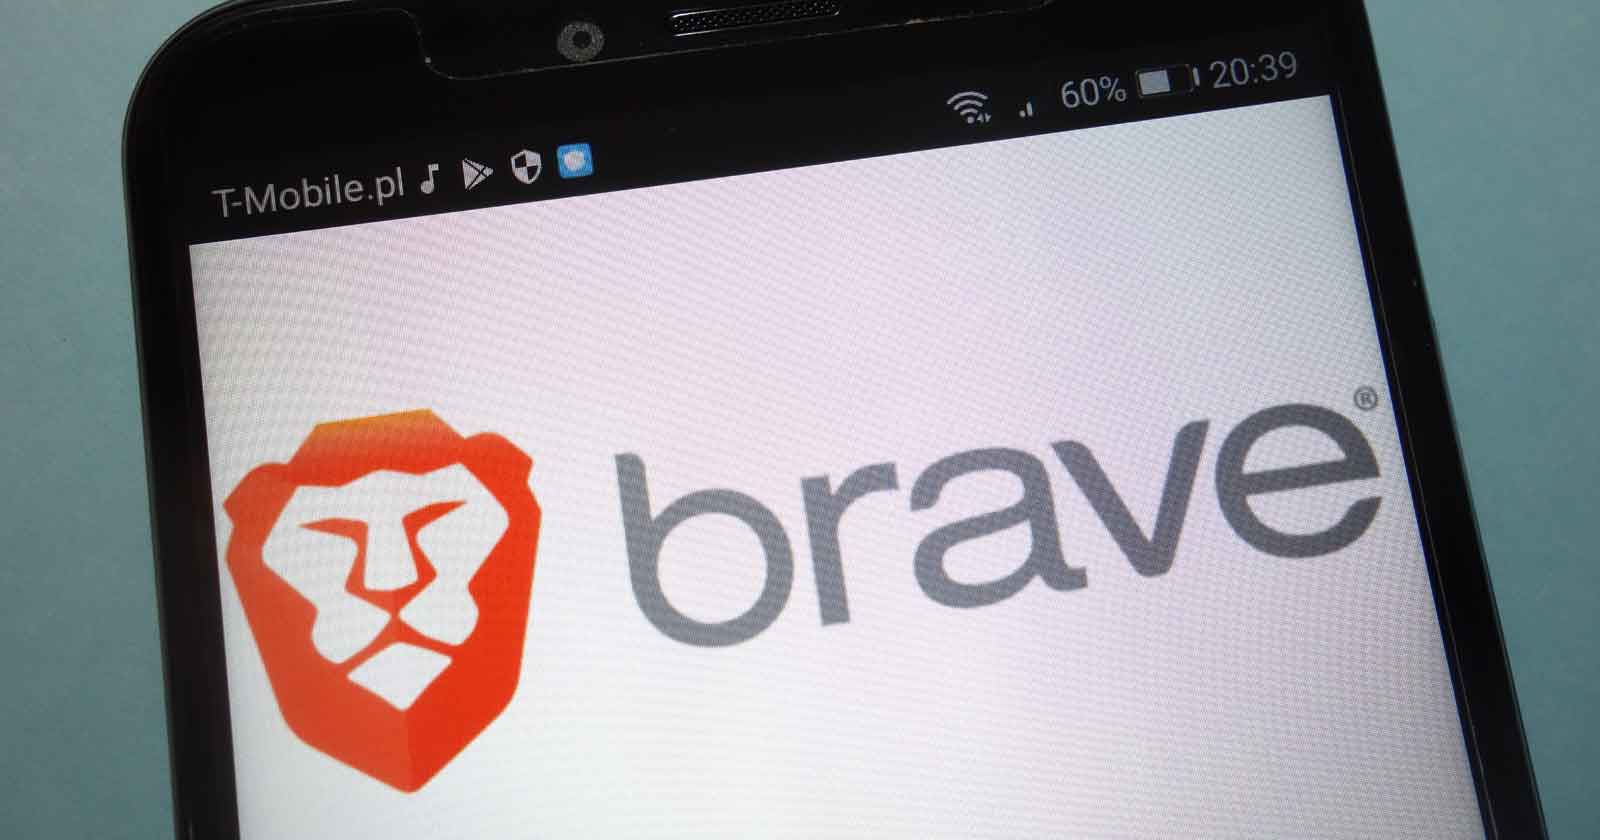 Brave Search may present a challenge to Google. Preview a new privacy-first search engine that respects publishers and is committed to unbiased result